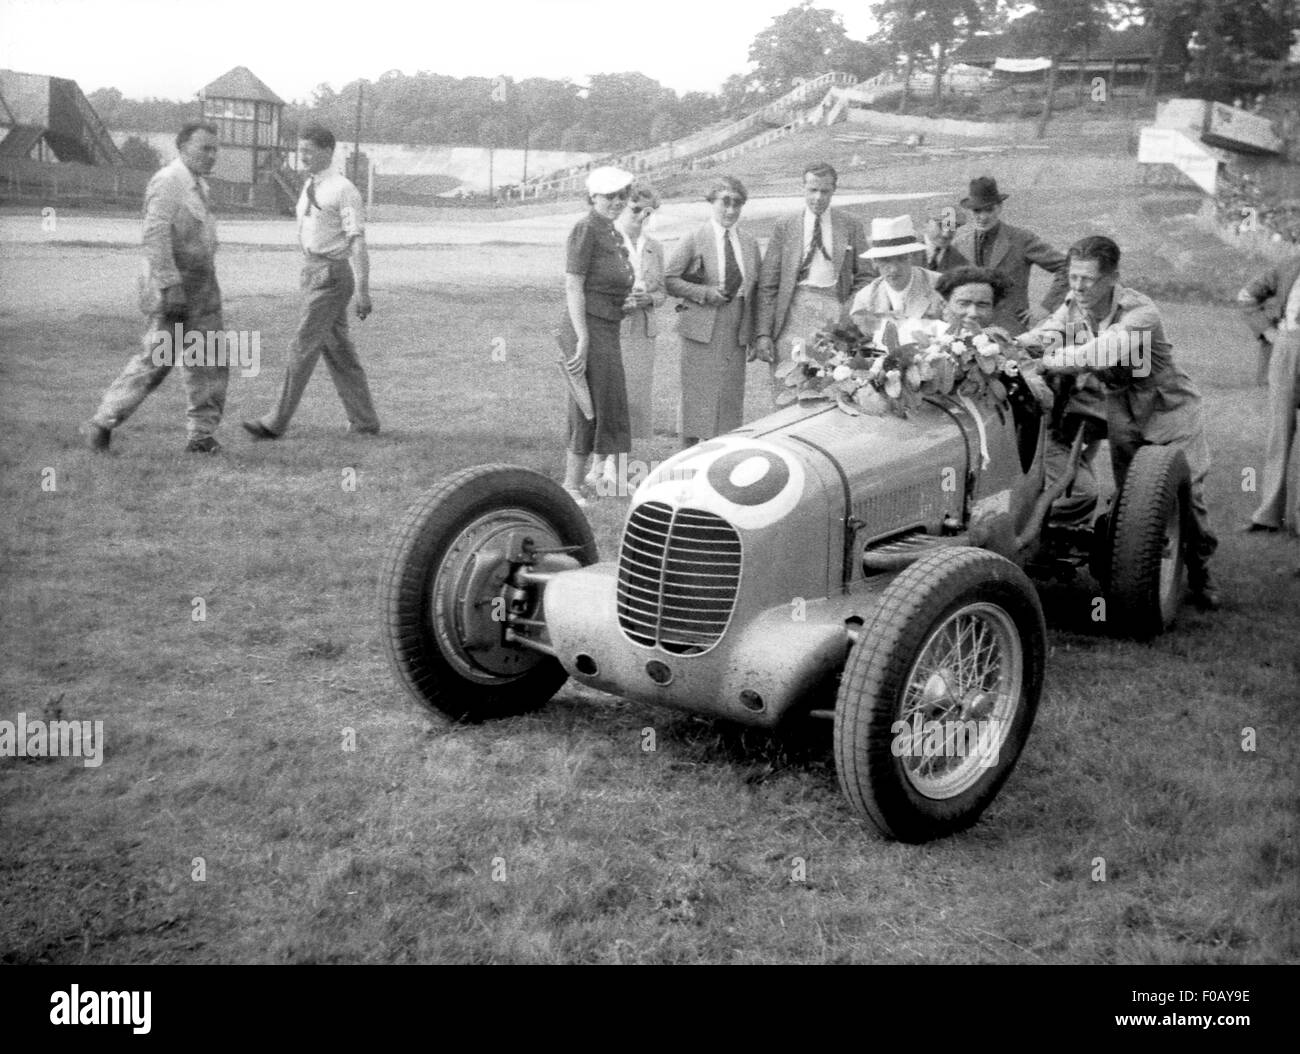 Maserati 6CM racing car 1930s - Stock Image